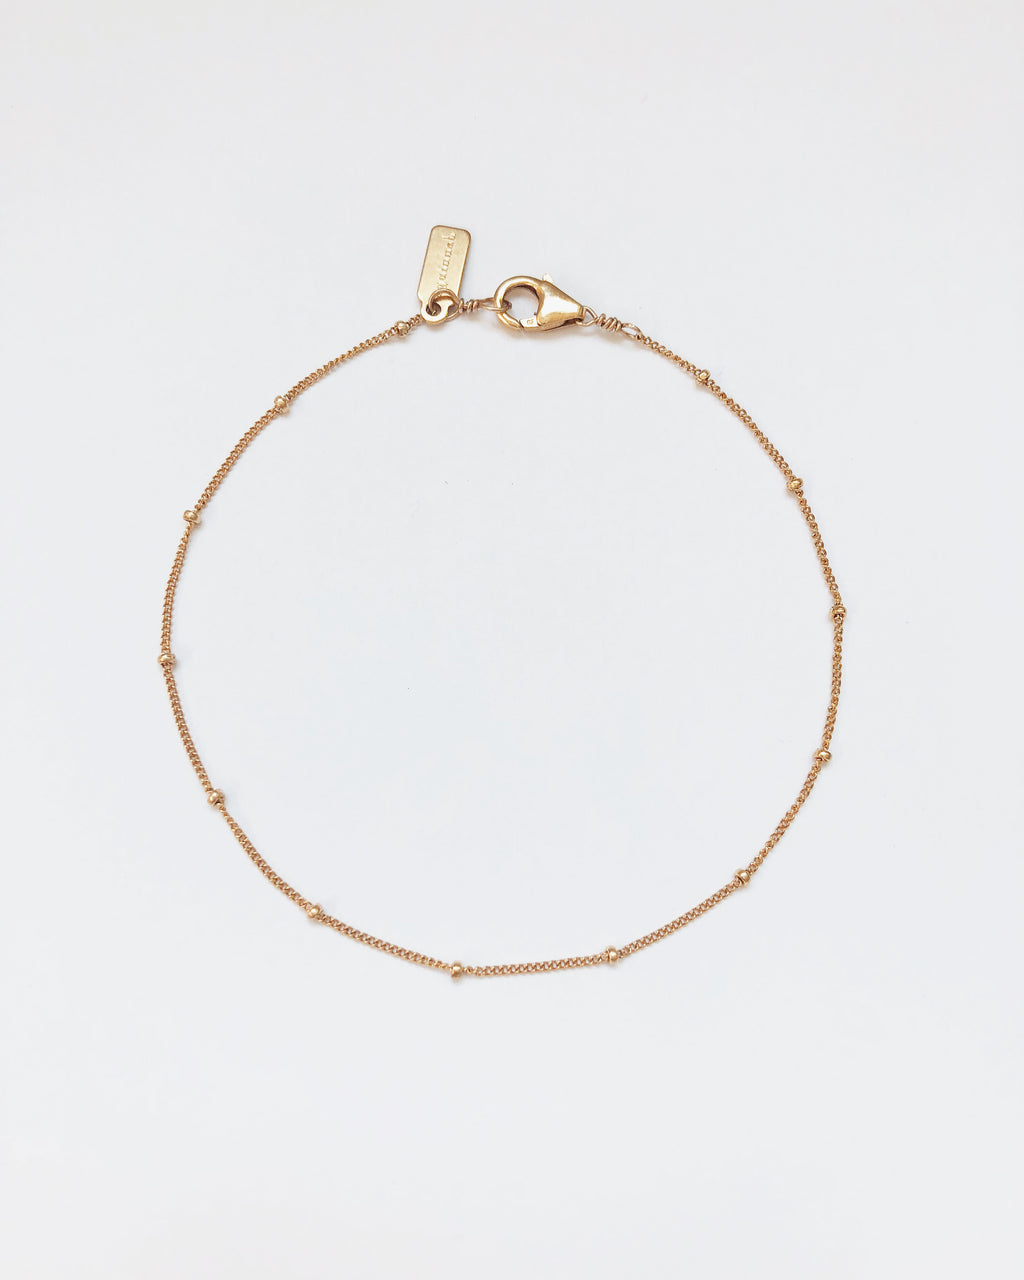 Aquinnah Satellite Chain Anklet in Gold